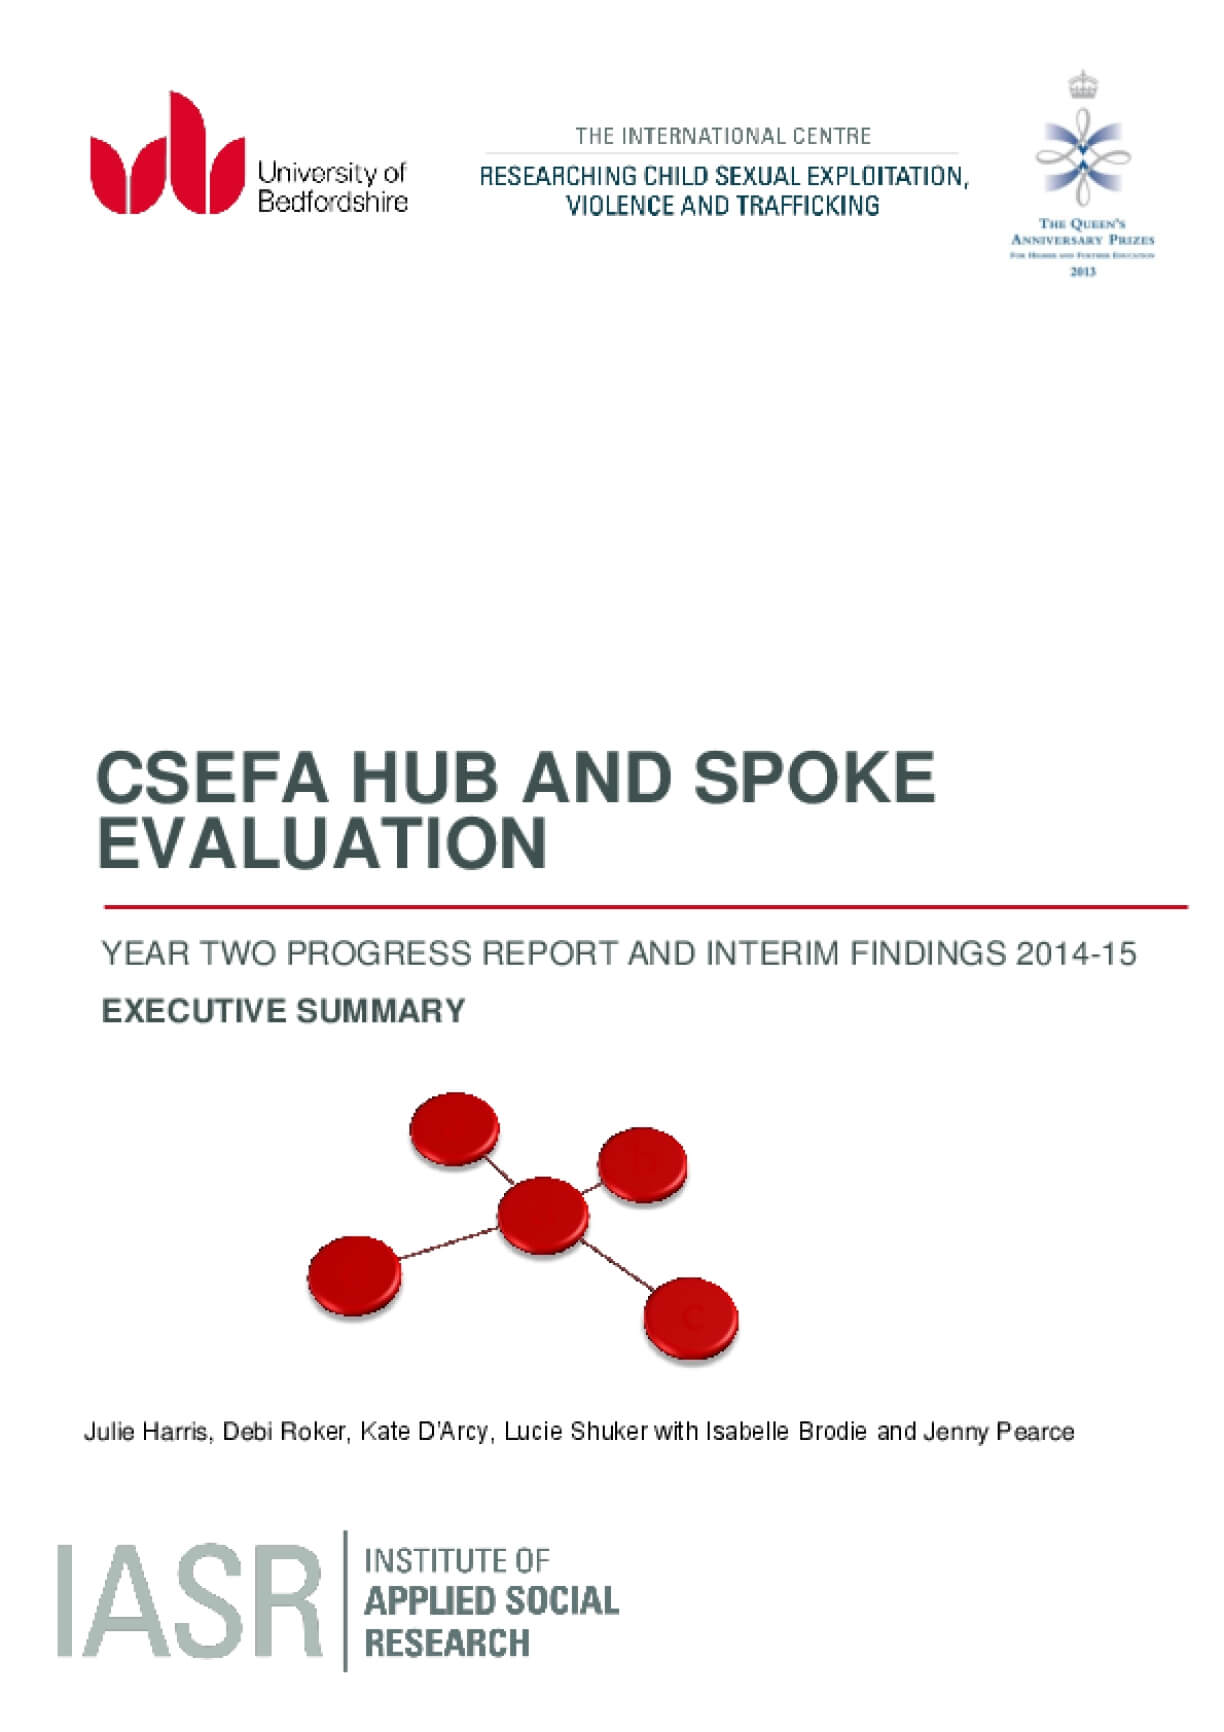 CSEFA Hub and Spoke Evaluation Executive Summary